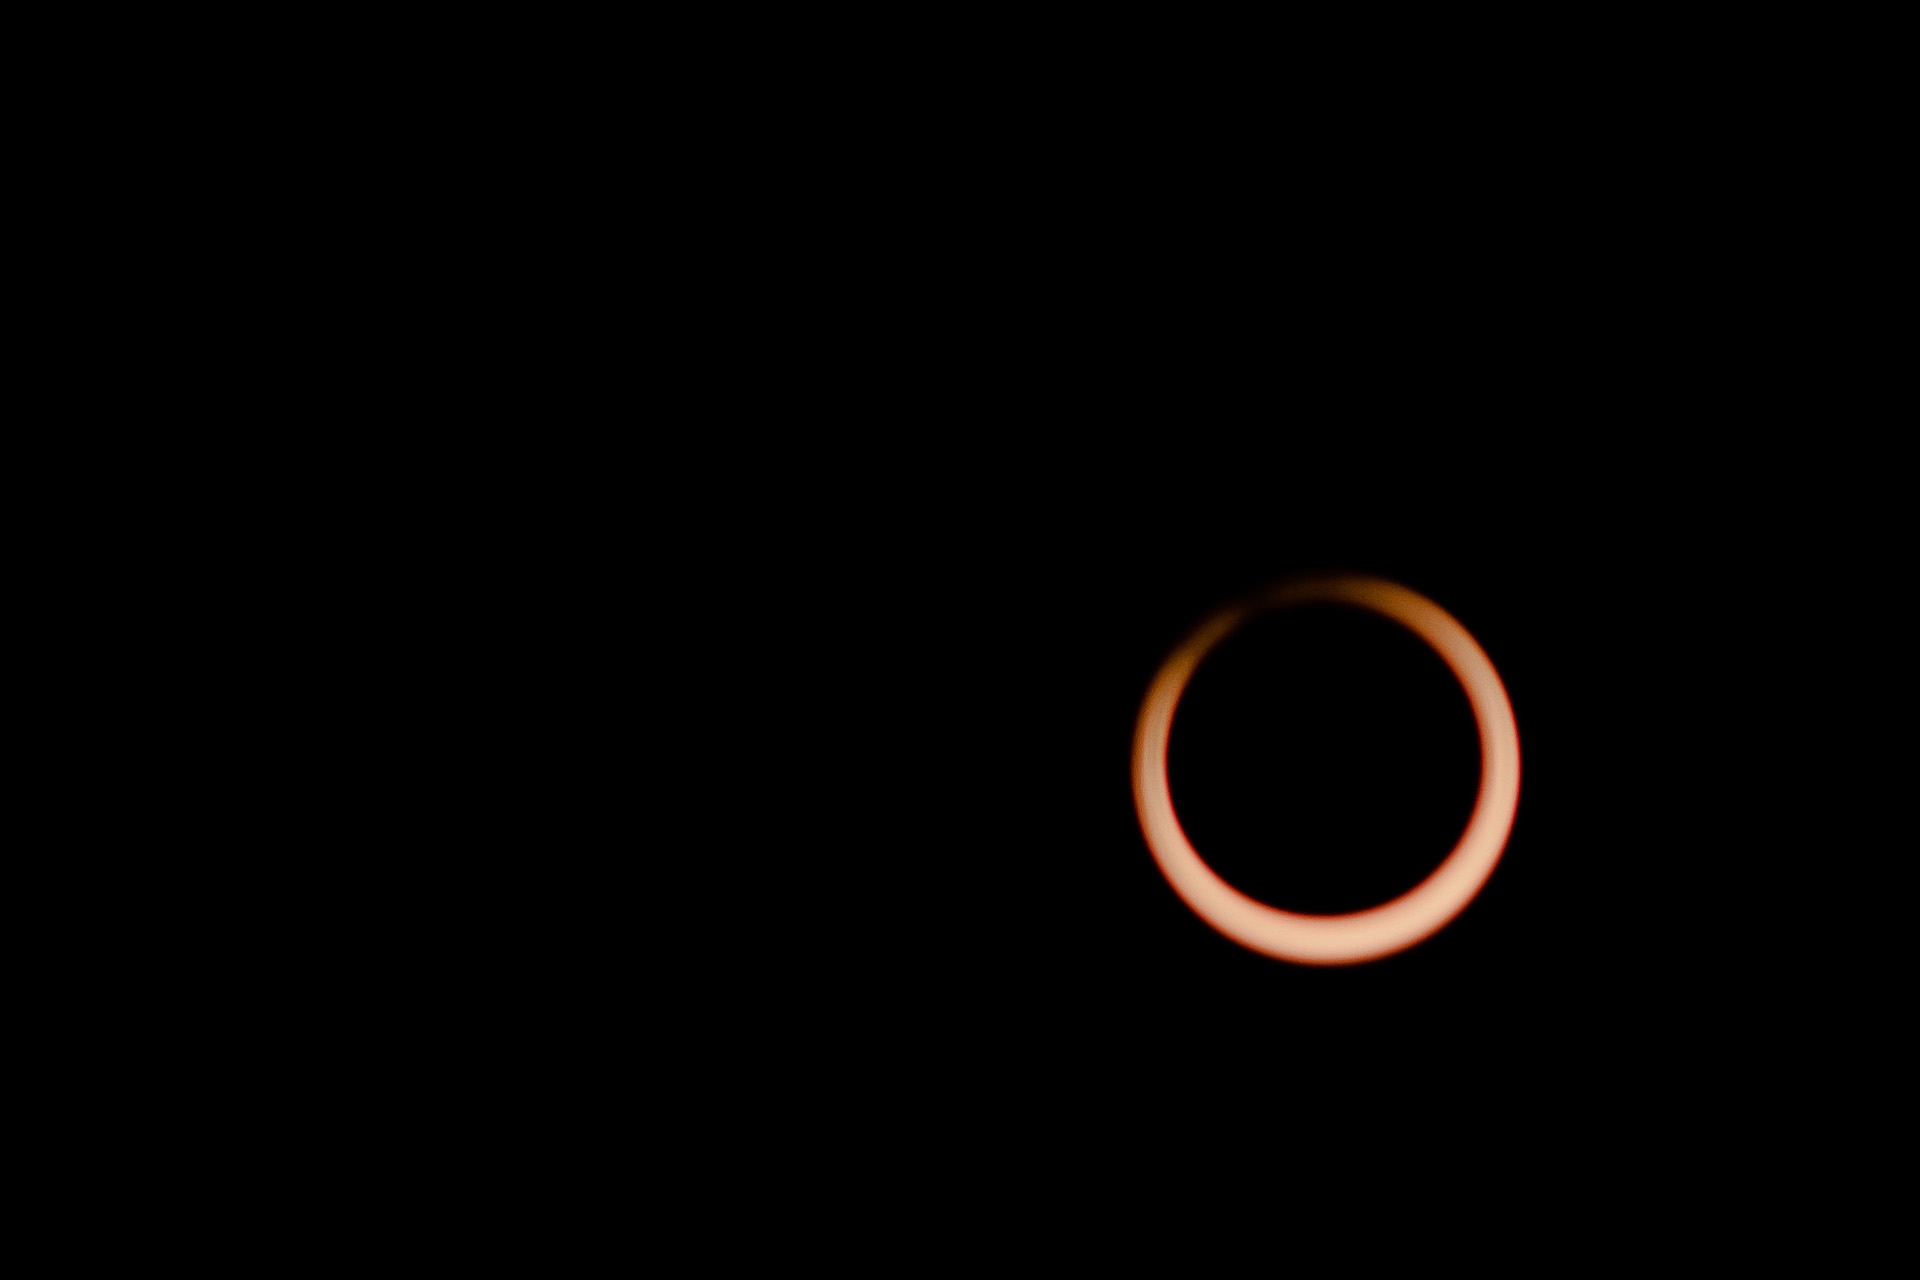 eclipse010916  (8)